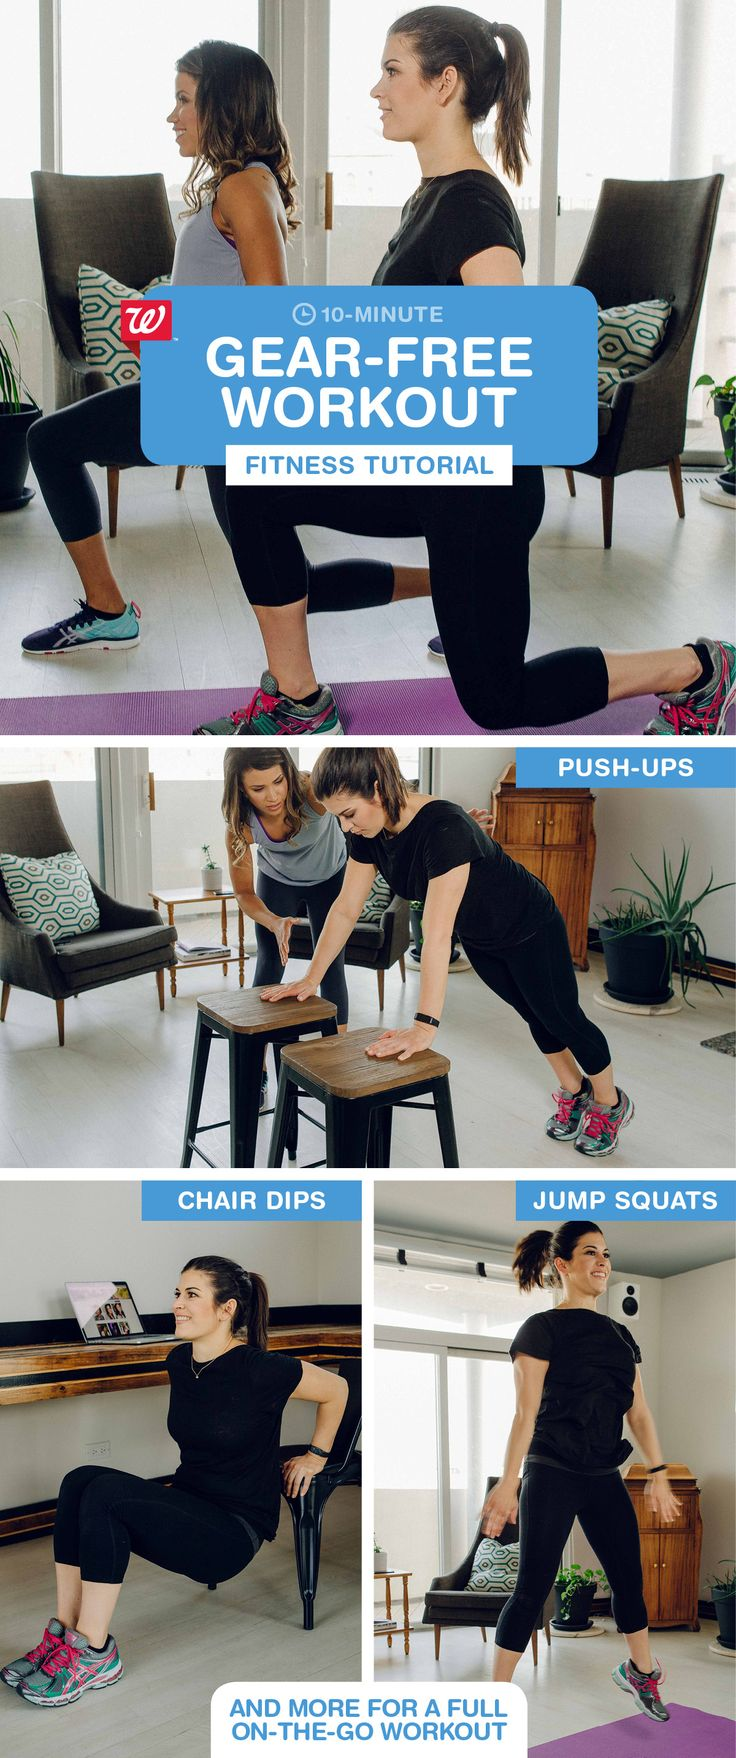 Don't have time to hit the gym? Repeat this workout twice for an effective 10-minute energy boost on the go. Add jump squats for some calorie-burning cardio: 1) In a wide stance, bend legs to a squat. 2) Push up into the air, using arms for momentum. 3) Bend back to squat position & repeat. Visit our blog for the full 10-minute workout and get the Walgreens Activity Tracker to earn Balance Rewards points as you stay active!